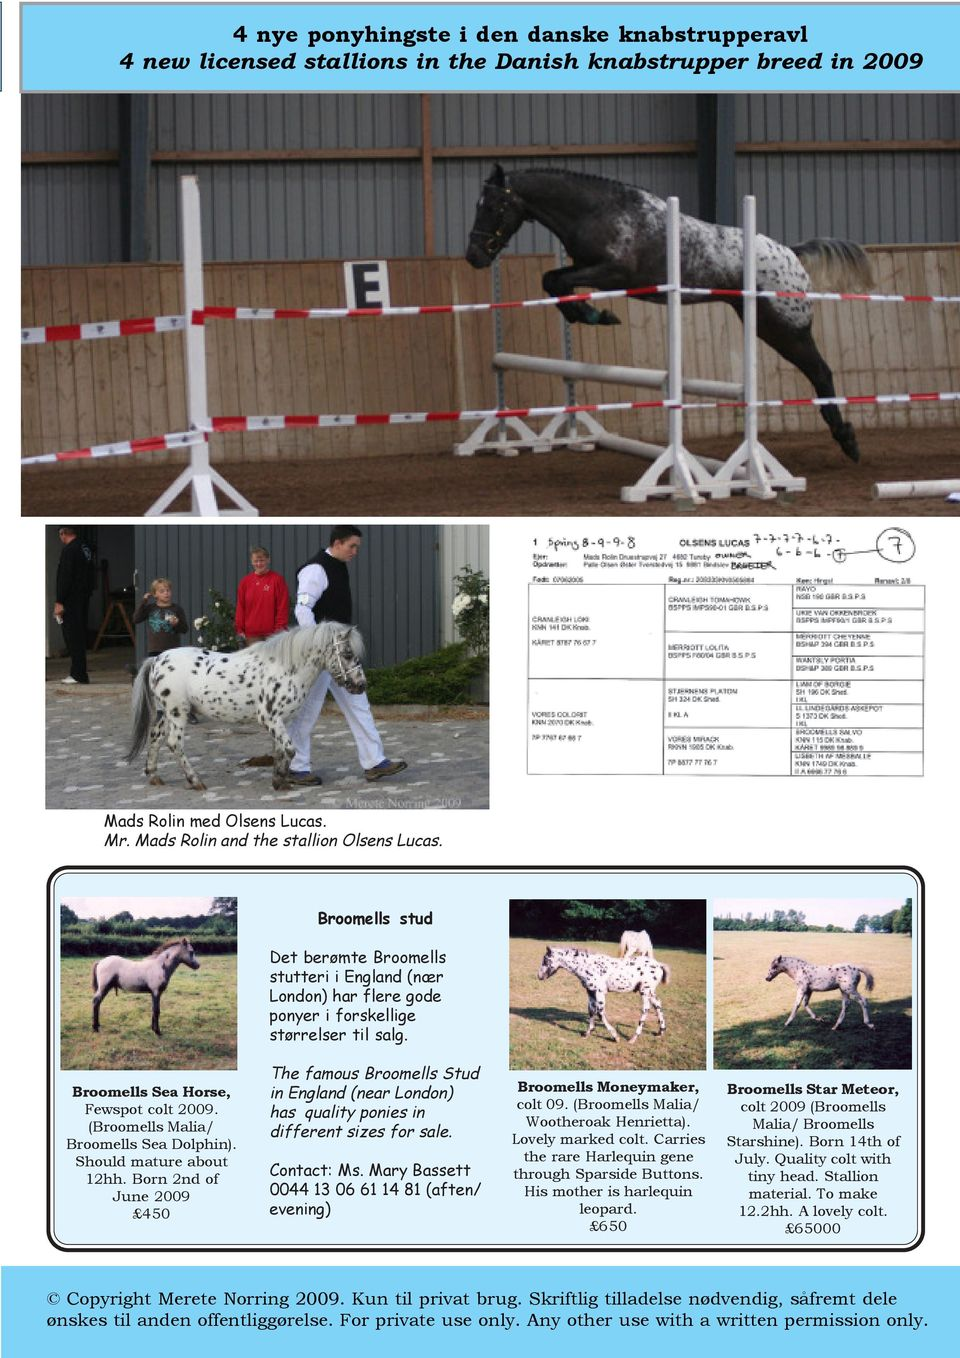 (Broomells Malia/ Broomells Sea Dolphin). Should mature about 12hh. Born 2nd of June 2009 450 The famous Broomells Stud in England (near London) has quality ponies in different sizes for sale.